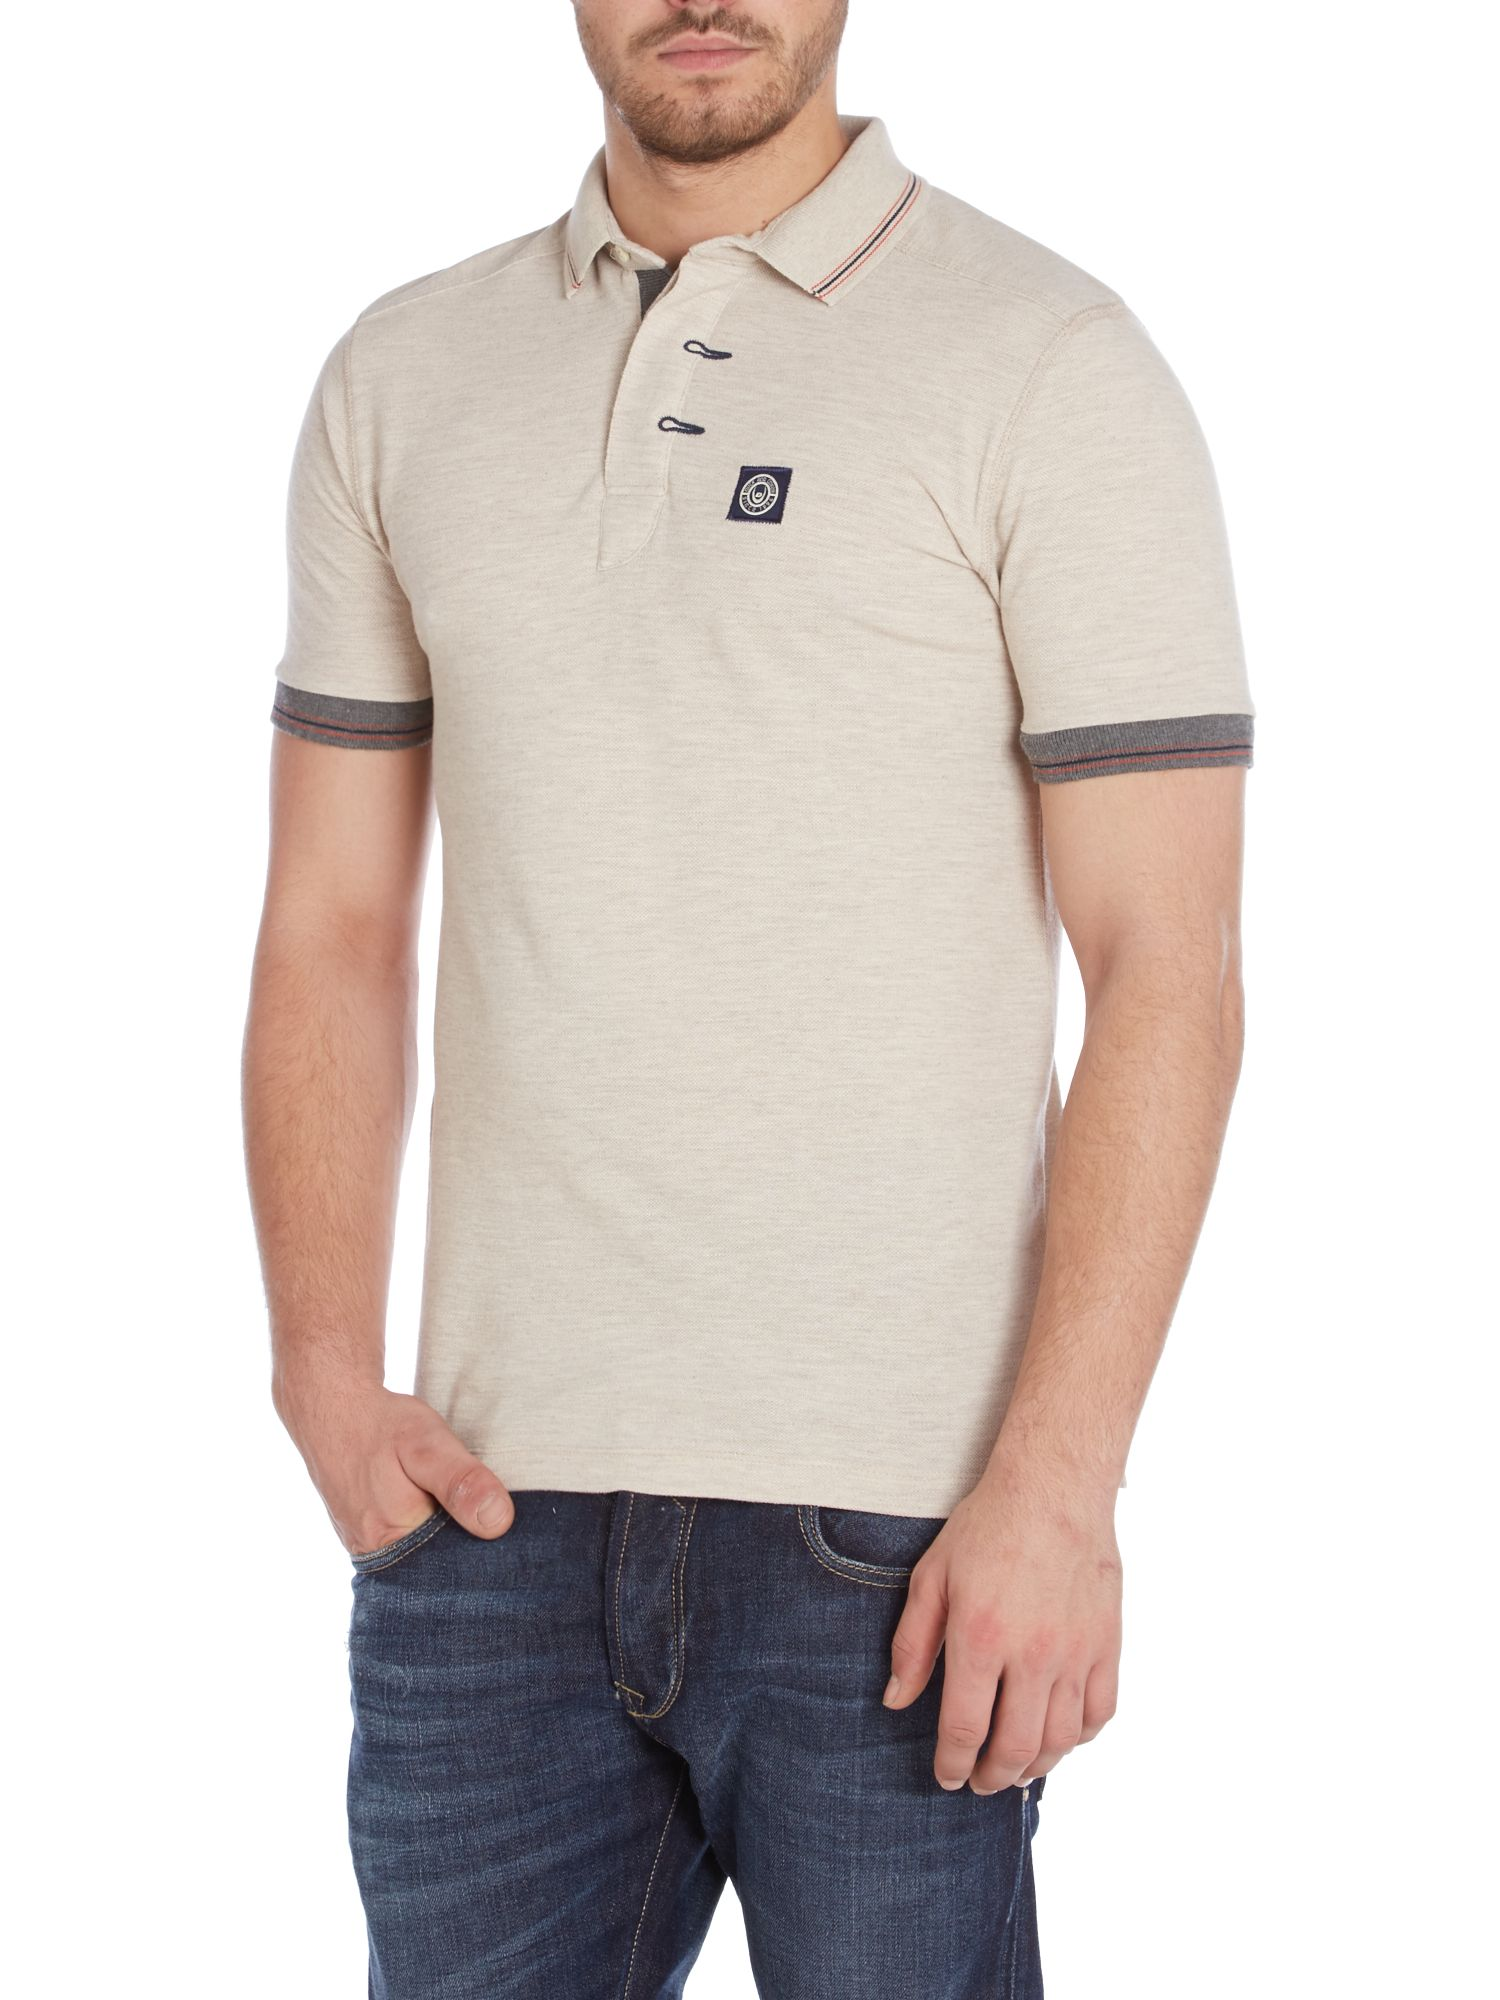 Sterling-v2 short sleeve pique polo